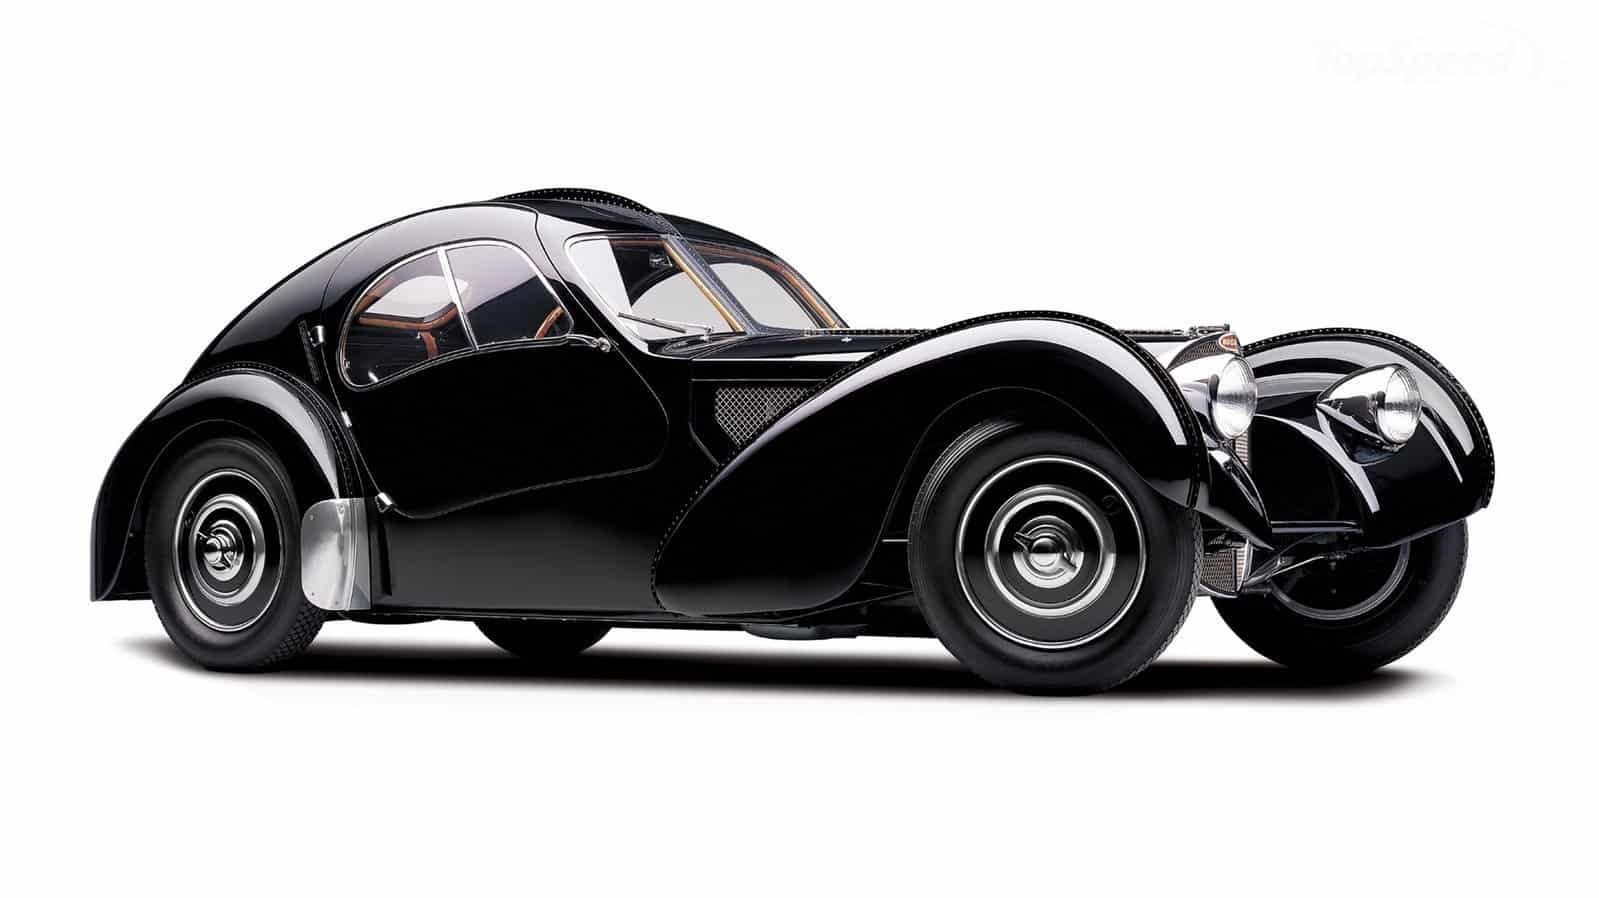 Ralph Lauren S 40 Million Bugatti Carlassic